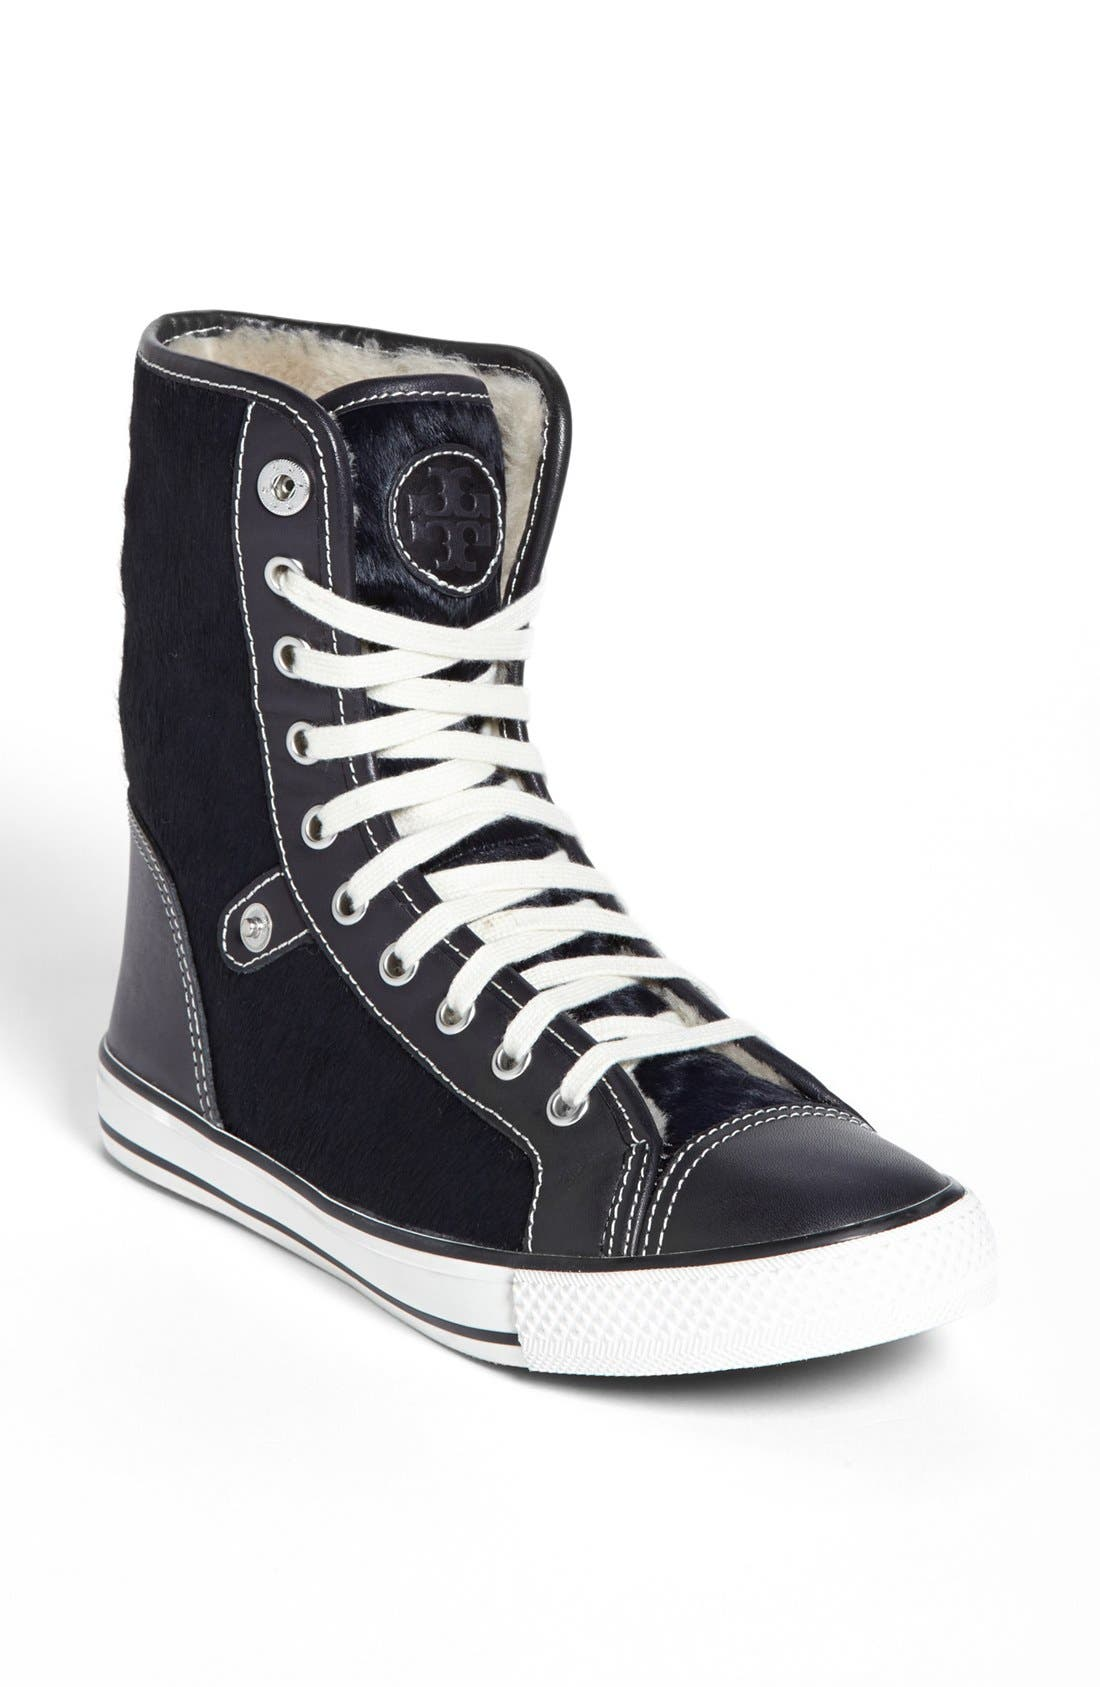 Alternate Image 1 Selected - Tory Burch 'Benjamin' High Top Sneaker